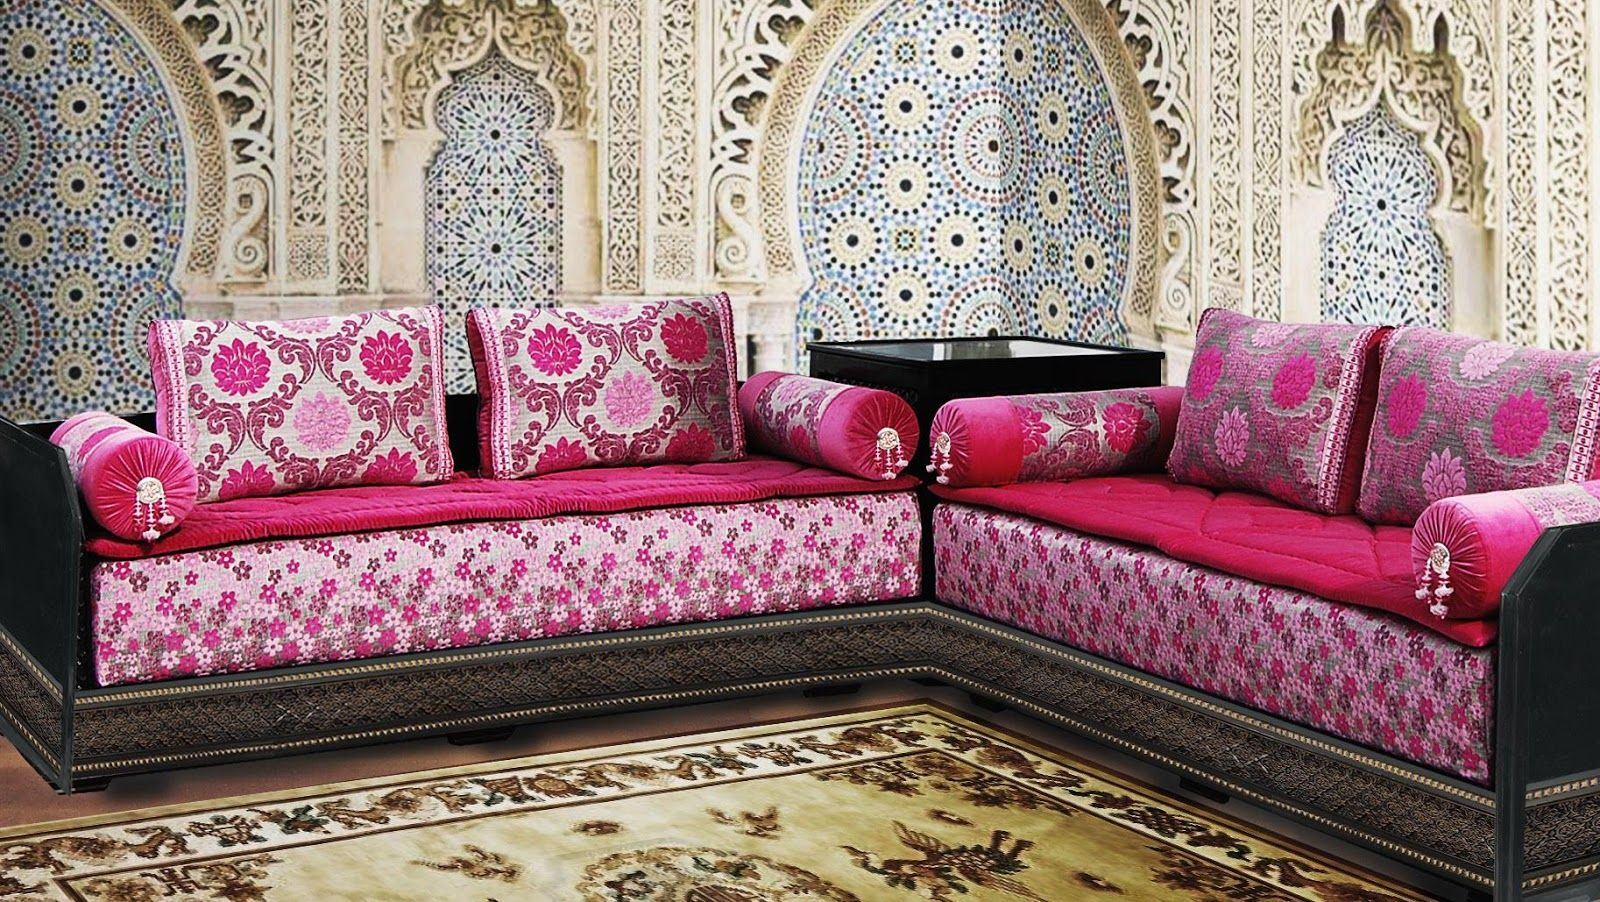 salon marocain design exceptionnel salon marocain salons and moroccan. Black Bedroom Furniture Sets. Home Design Ideas